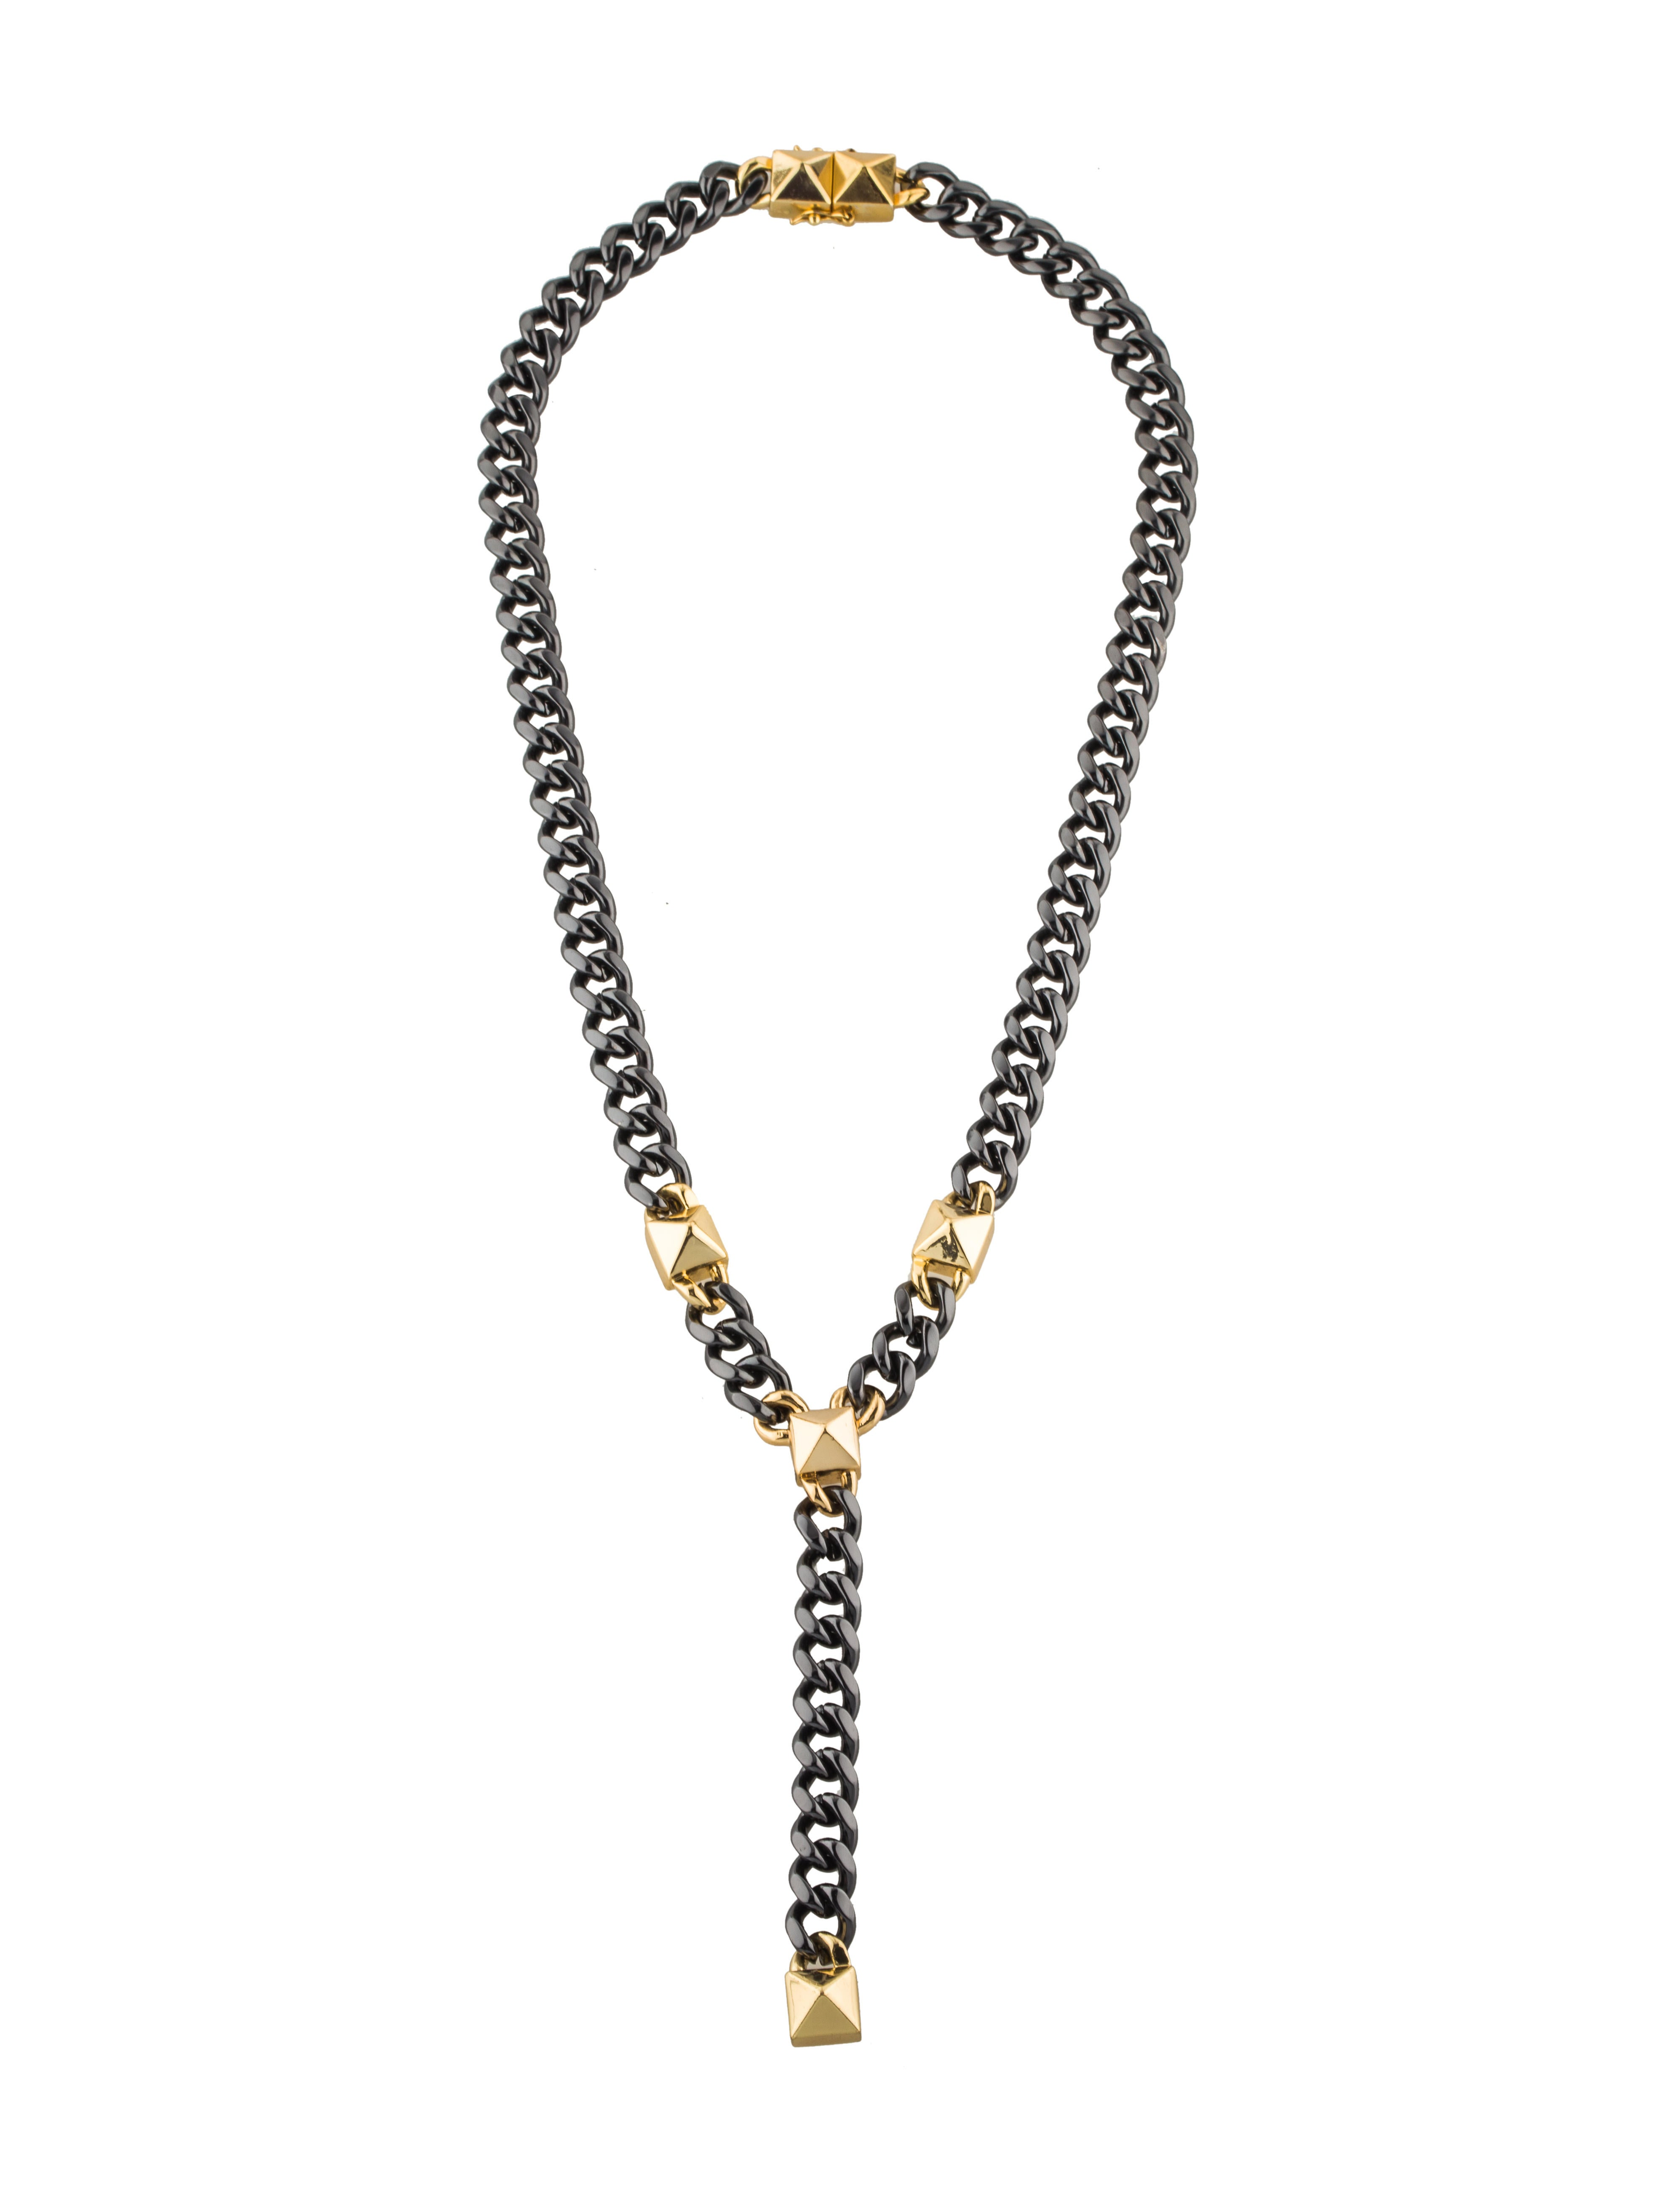 fallon studded curb chain y necklace necklaces. Black Bedroom Furniture Sets. Home Design Ideas